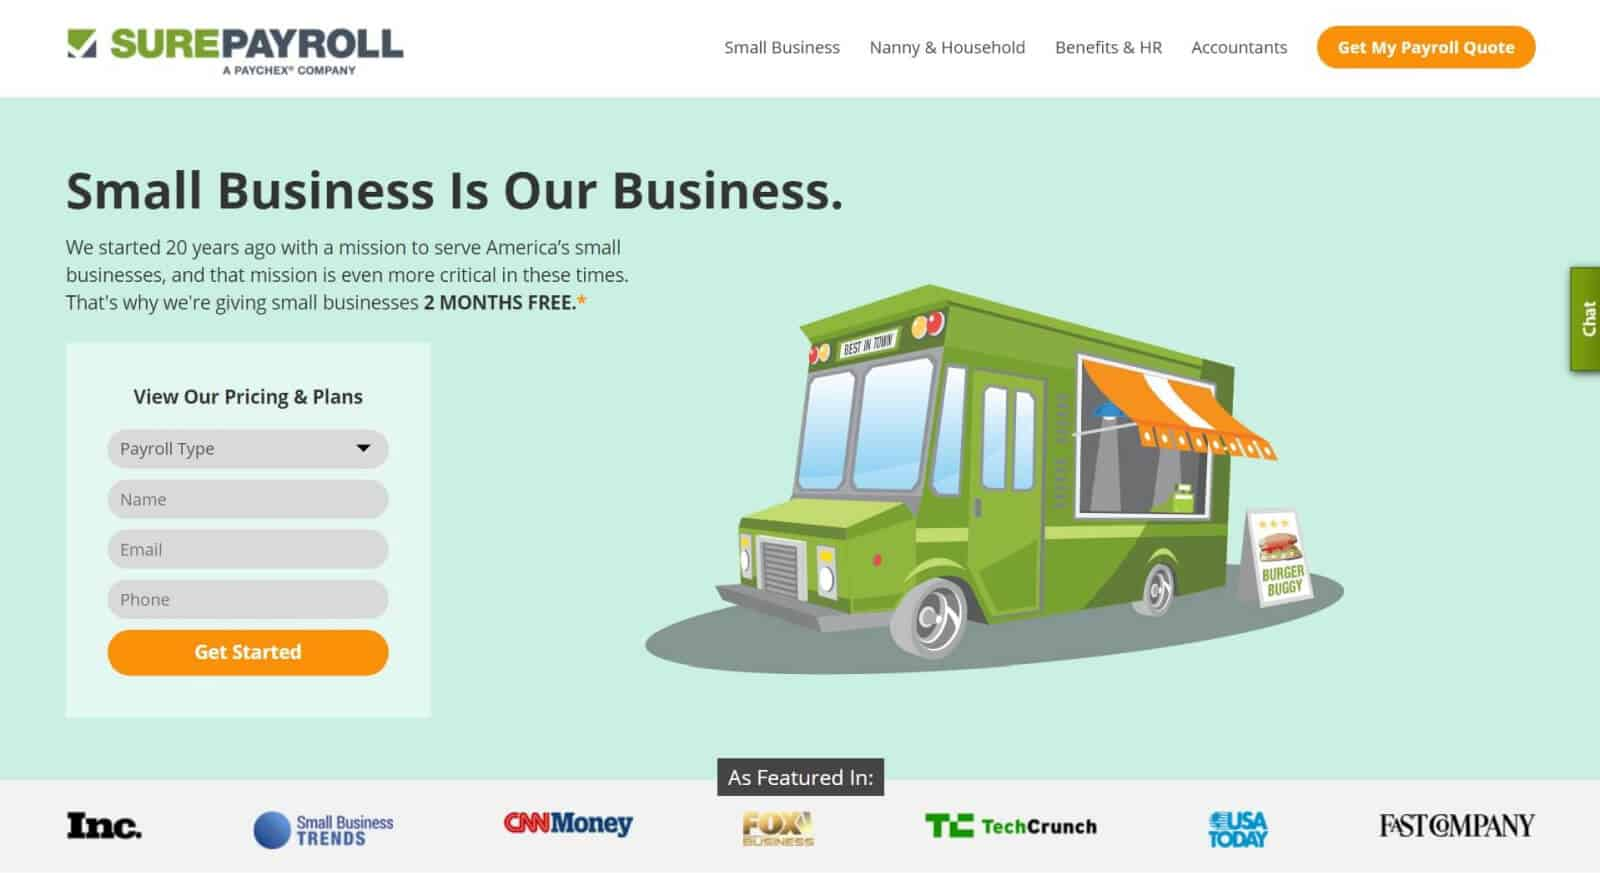 SurePayroll has been in business for 20 years